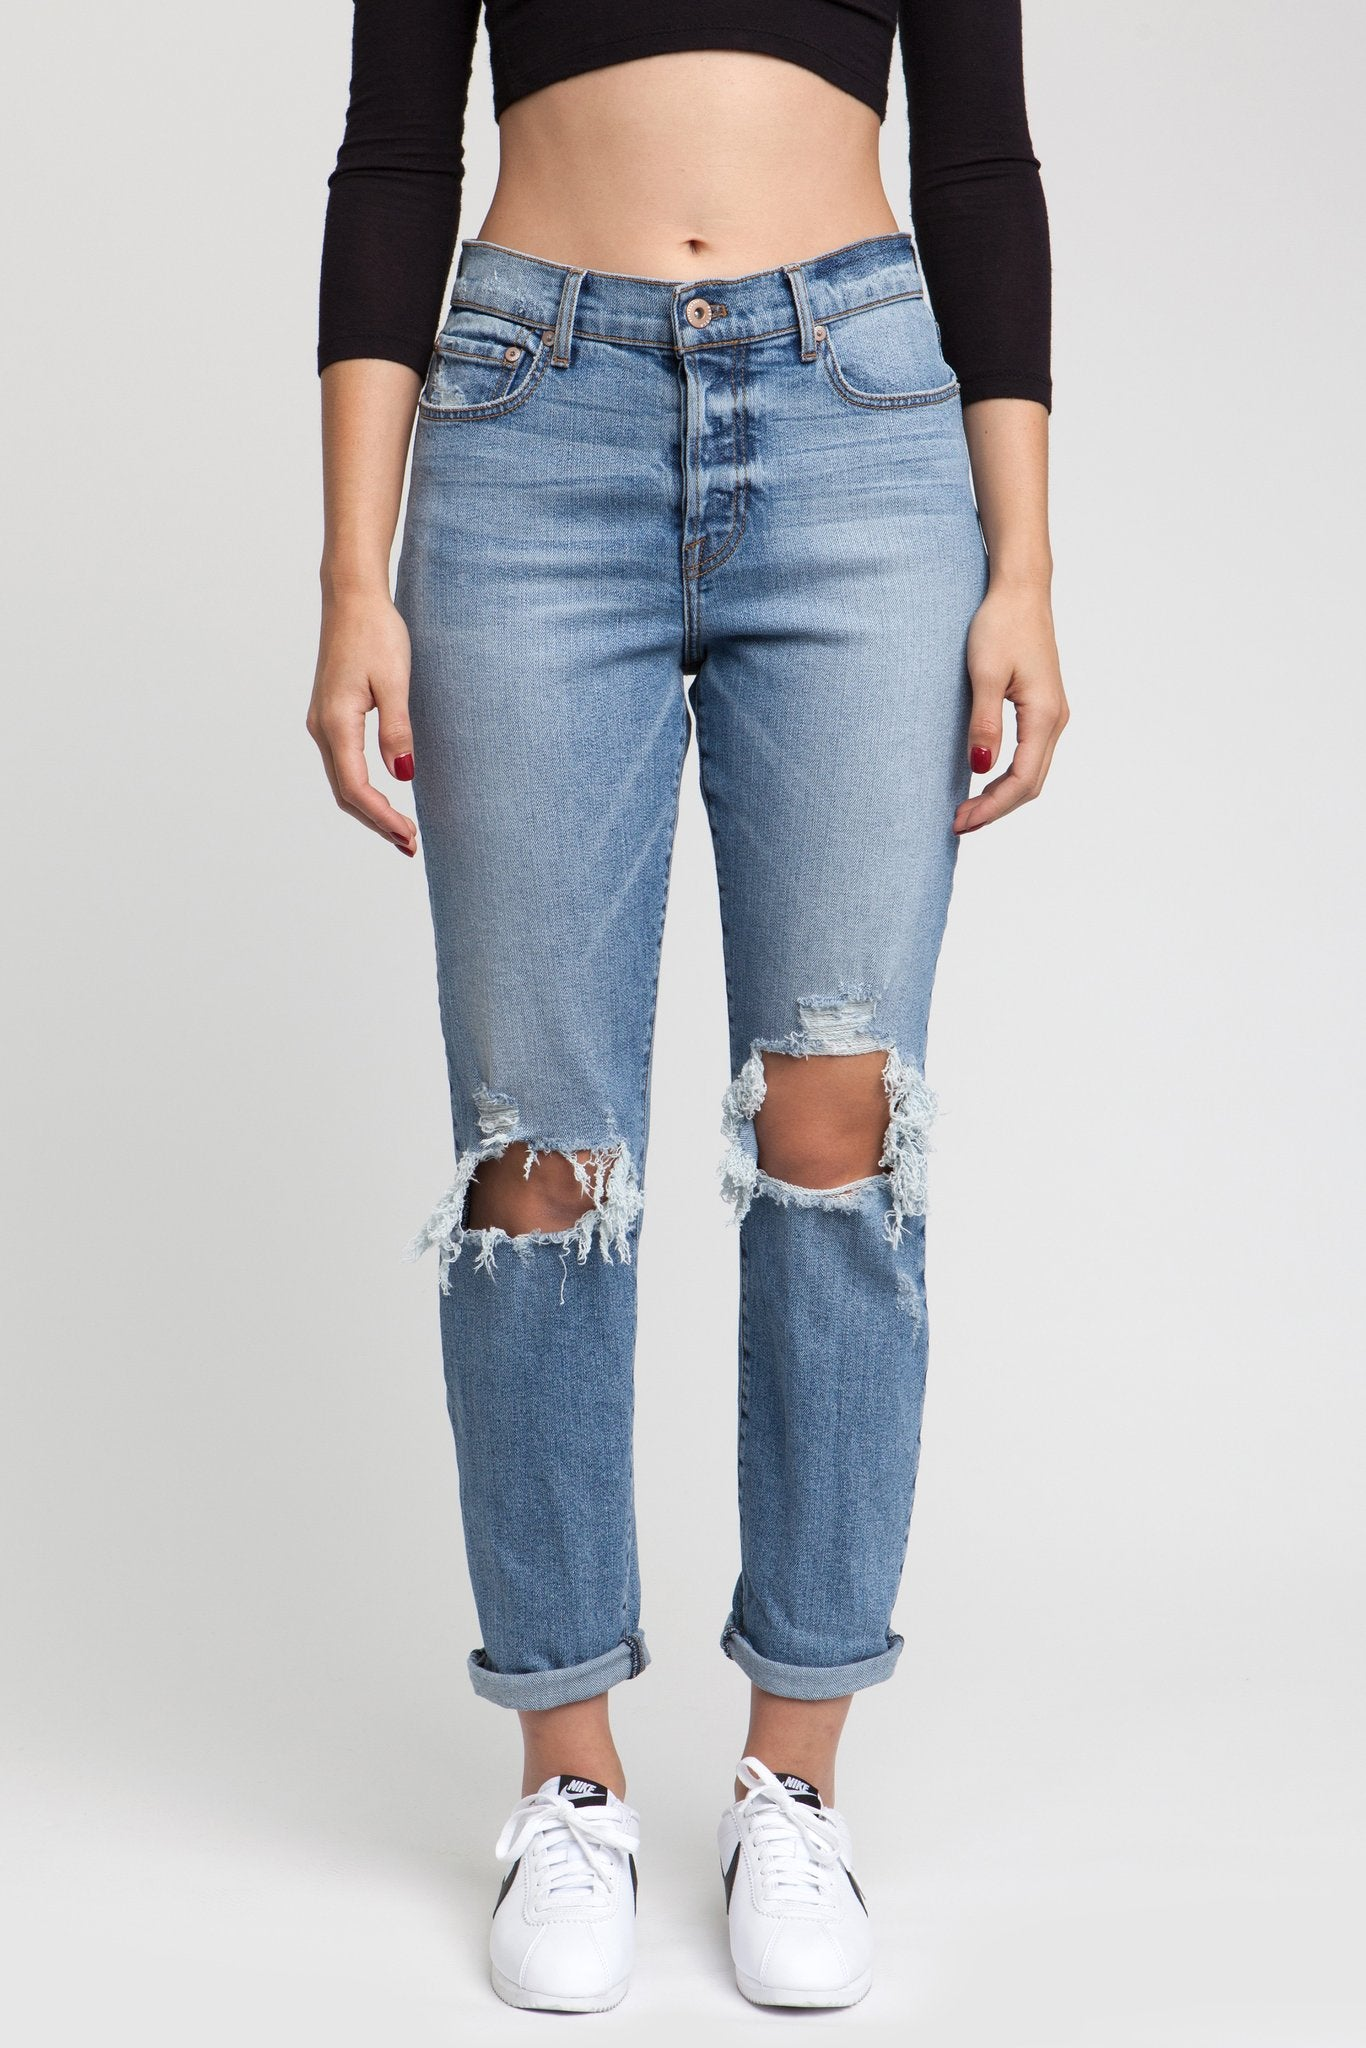 mode, Presley retro highwaist denim